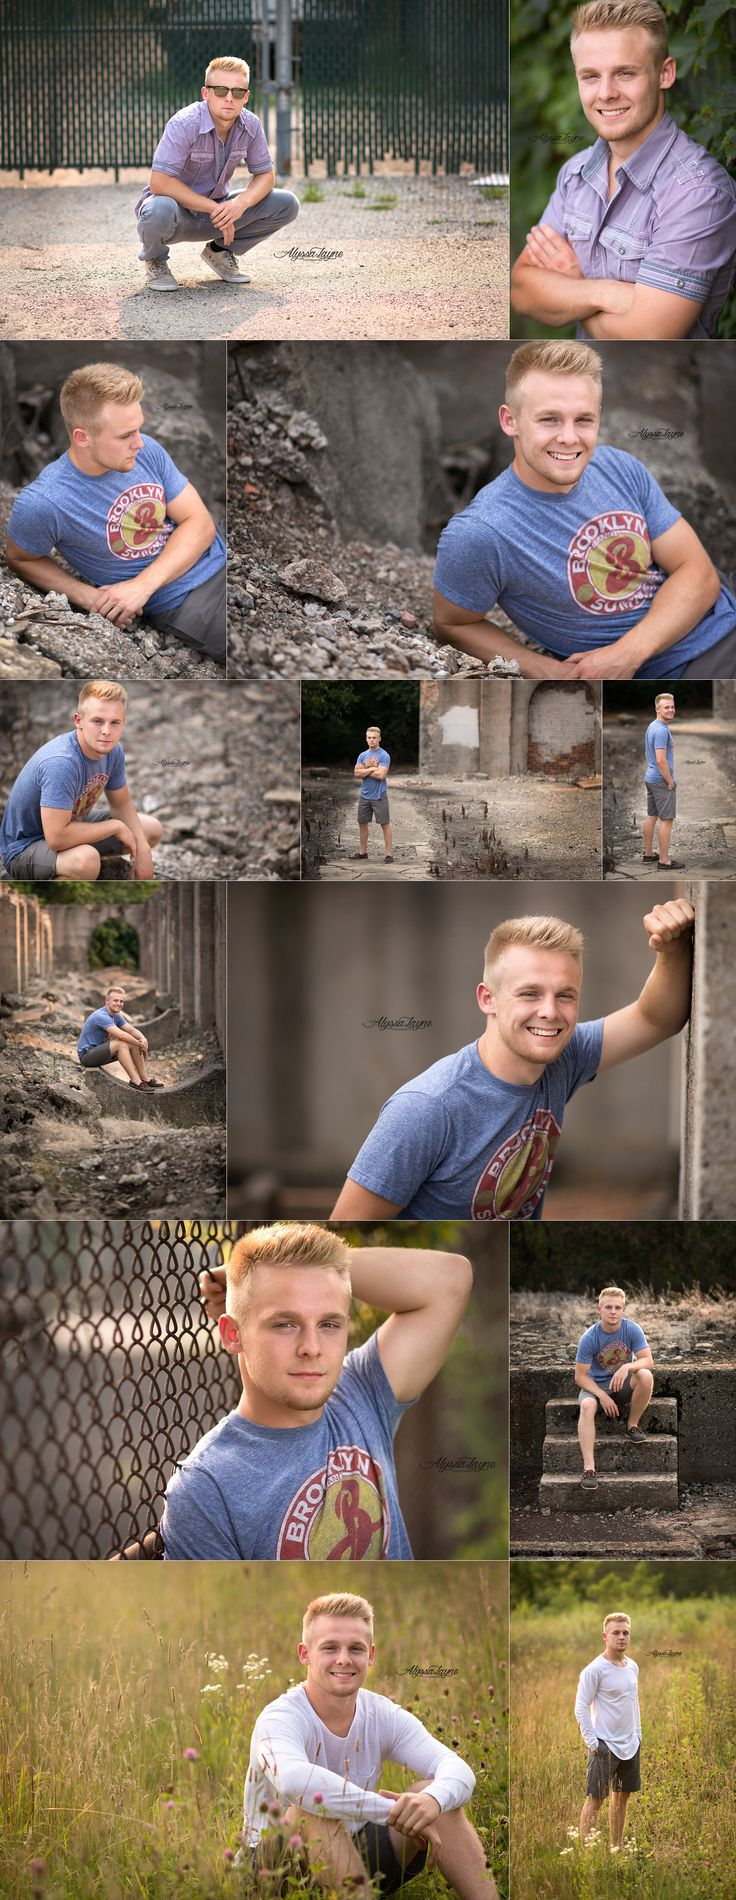 Noah | Senior Guy Poses | Senior Pictures | Chicago Senior Photographer | Alyssa Layne Photography